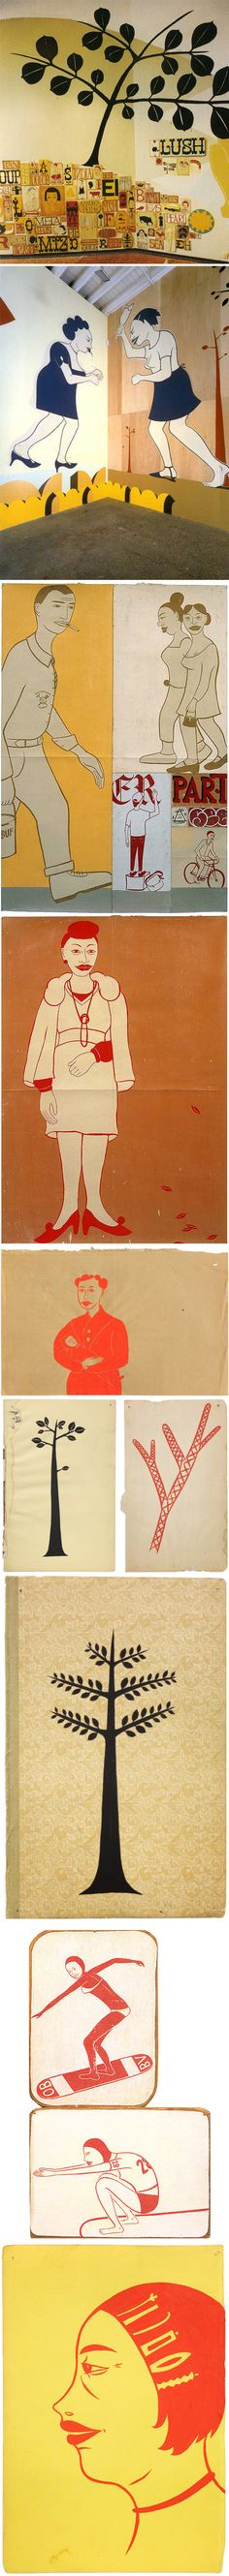 Margaret Kilgallen. I want one of her pieces so bad.